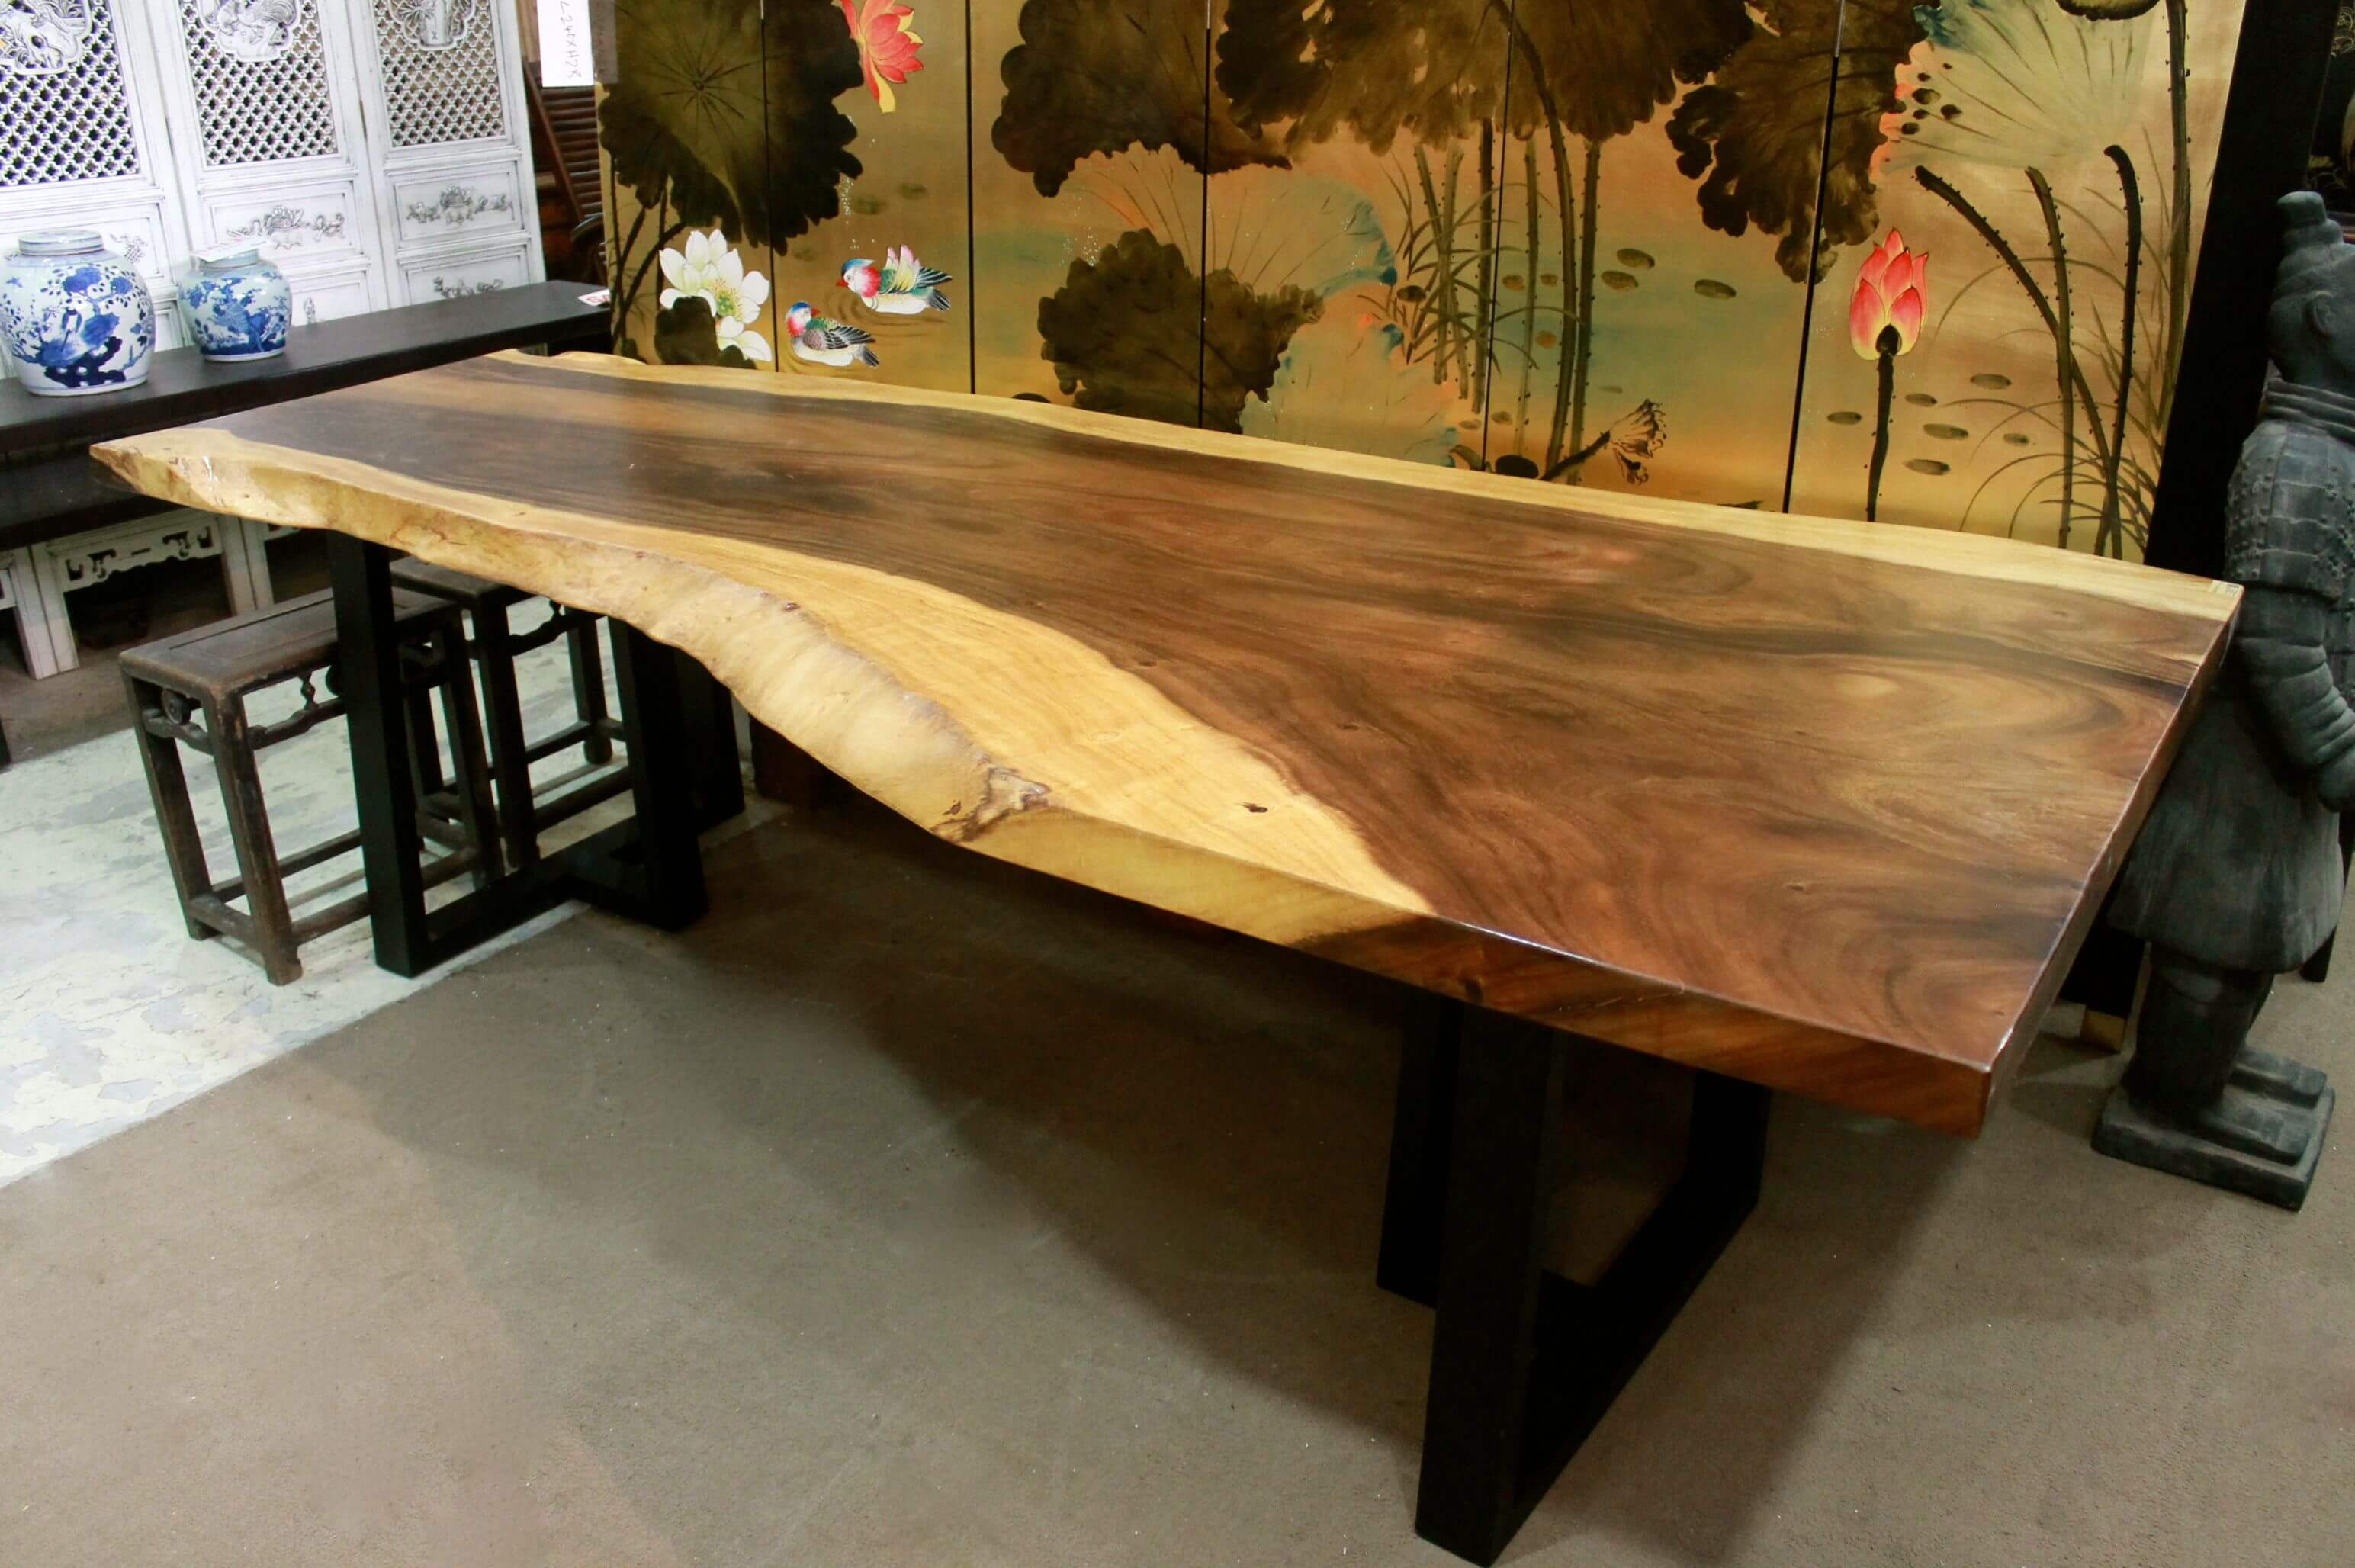 N 1932 Large Wooden Table Top With Metal Legs